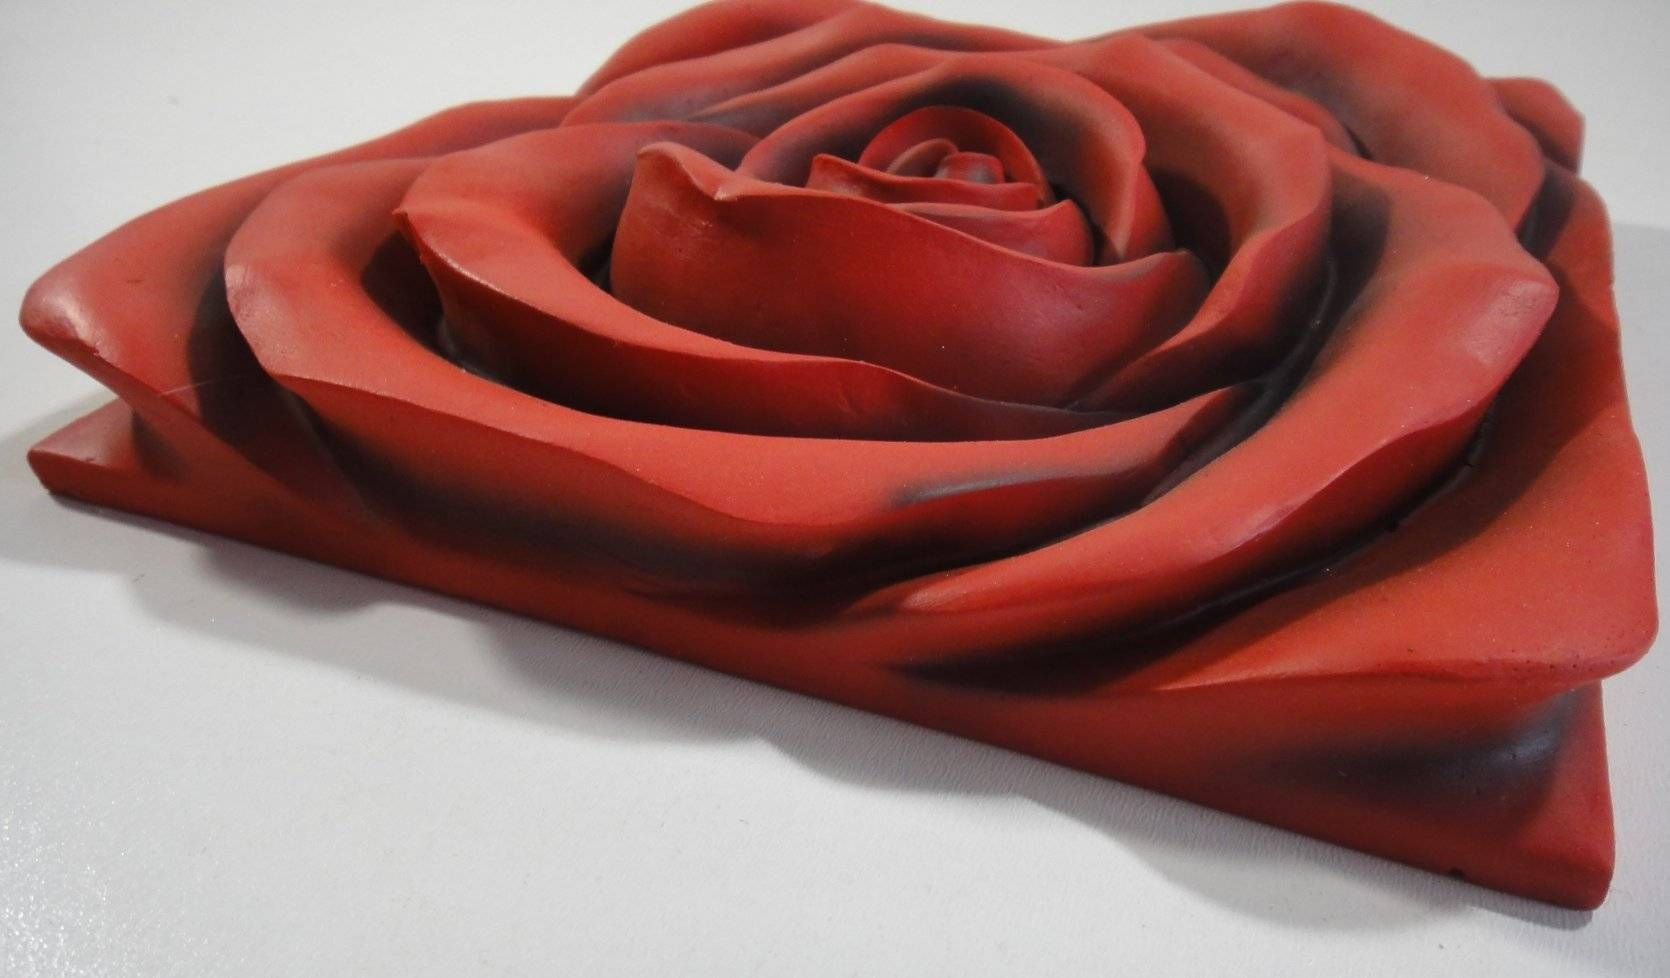 Wall Art Design: Resin Wall Art Beautiful Contemporary 3D Resin With Best And Newest Red Rose Wall Art (View 18 of 20)